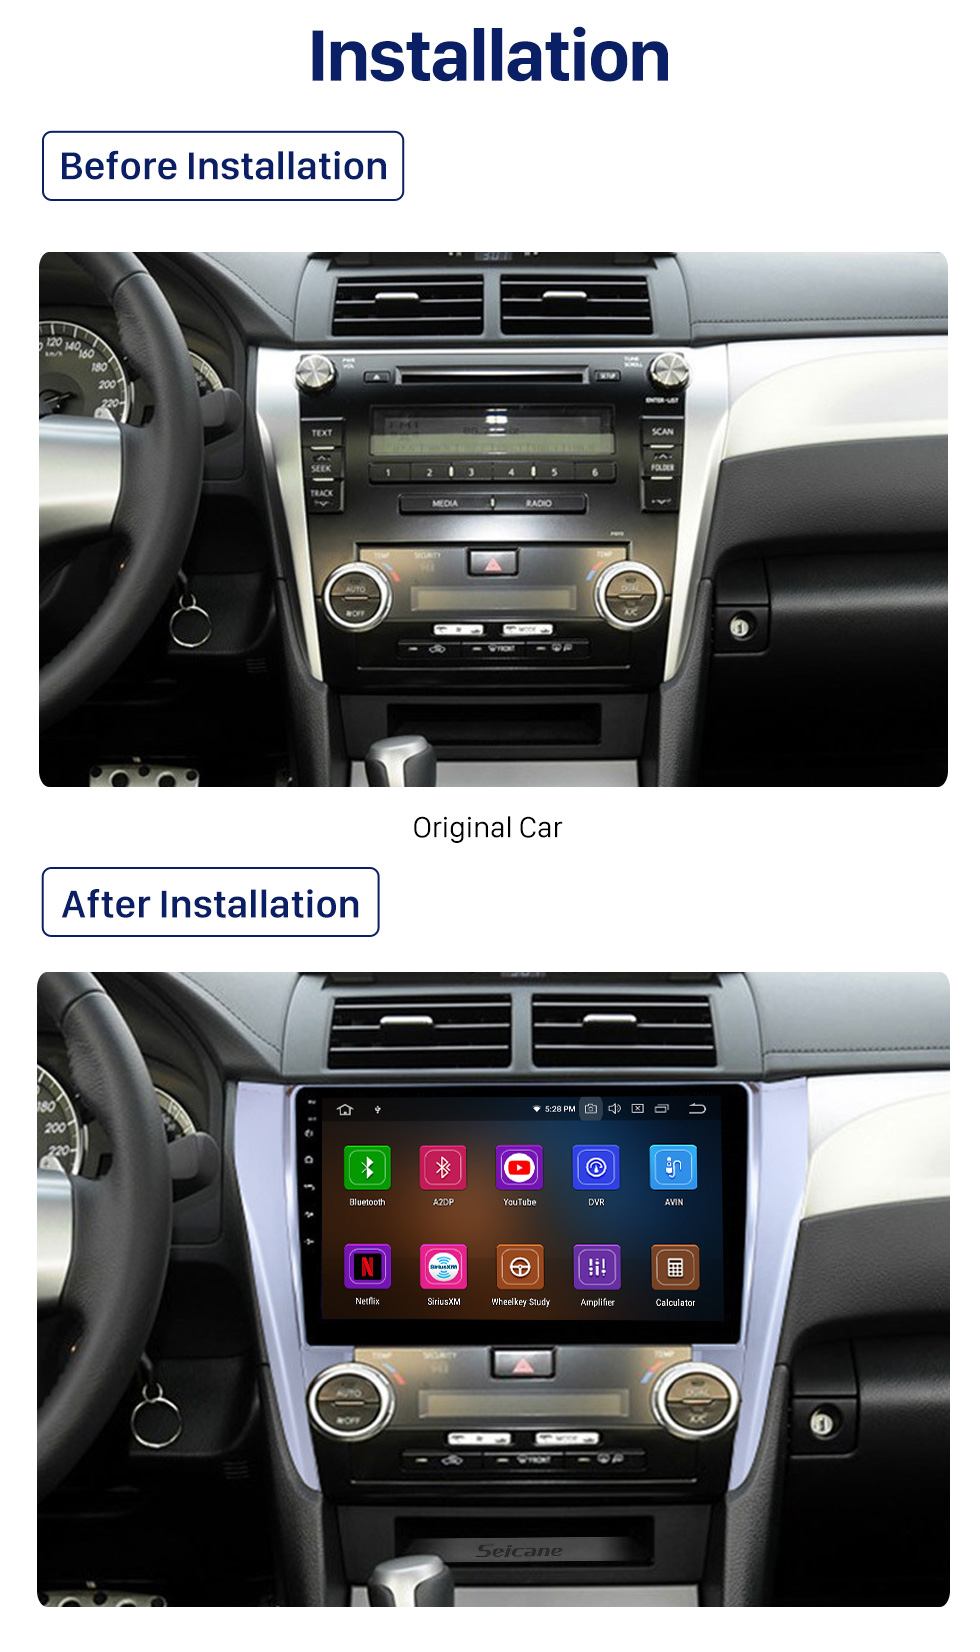 Seicane 10.1 inch Android 10.0 2012 2013 2014 2015 Toyota Camry HD Touchscreen Bluetooth GPS Navigation Radio Steering Wheel Control support DVR 3G/4G WIFI USB Carplayer DVD Player